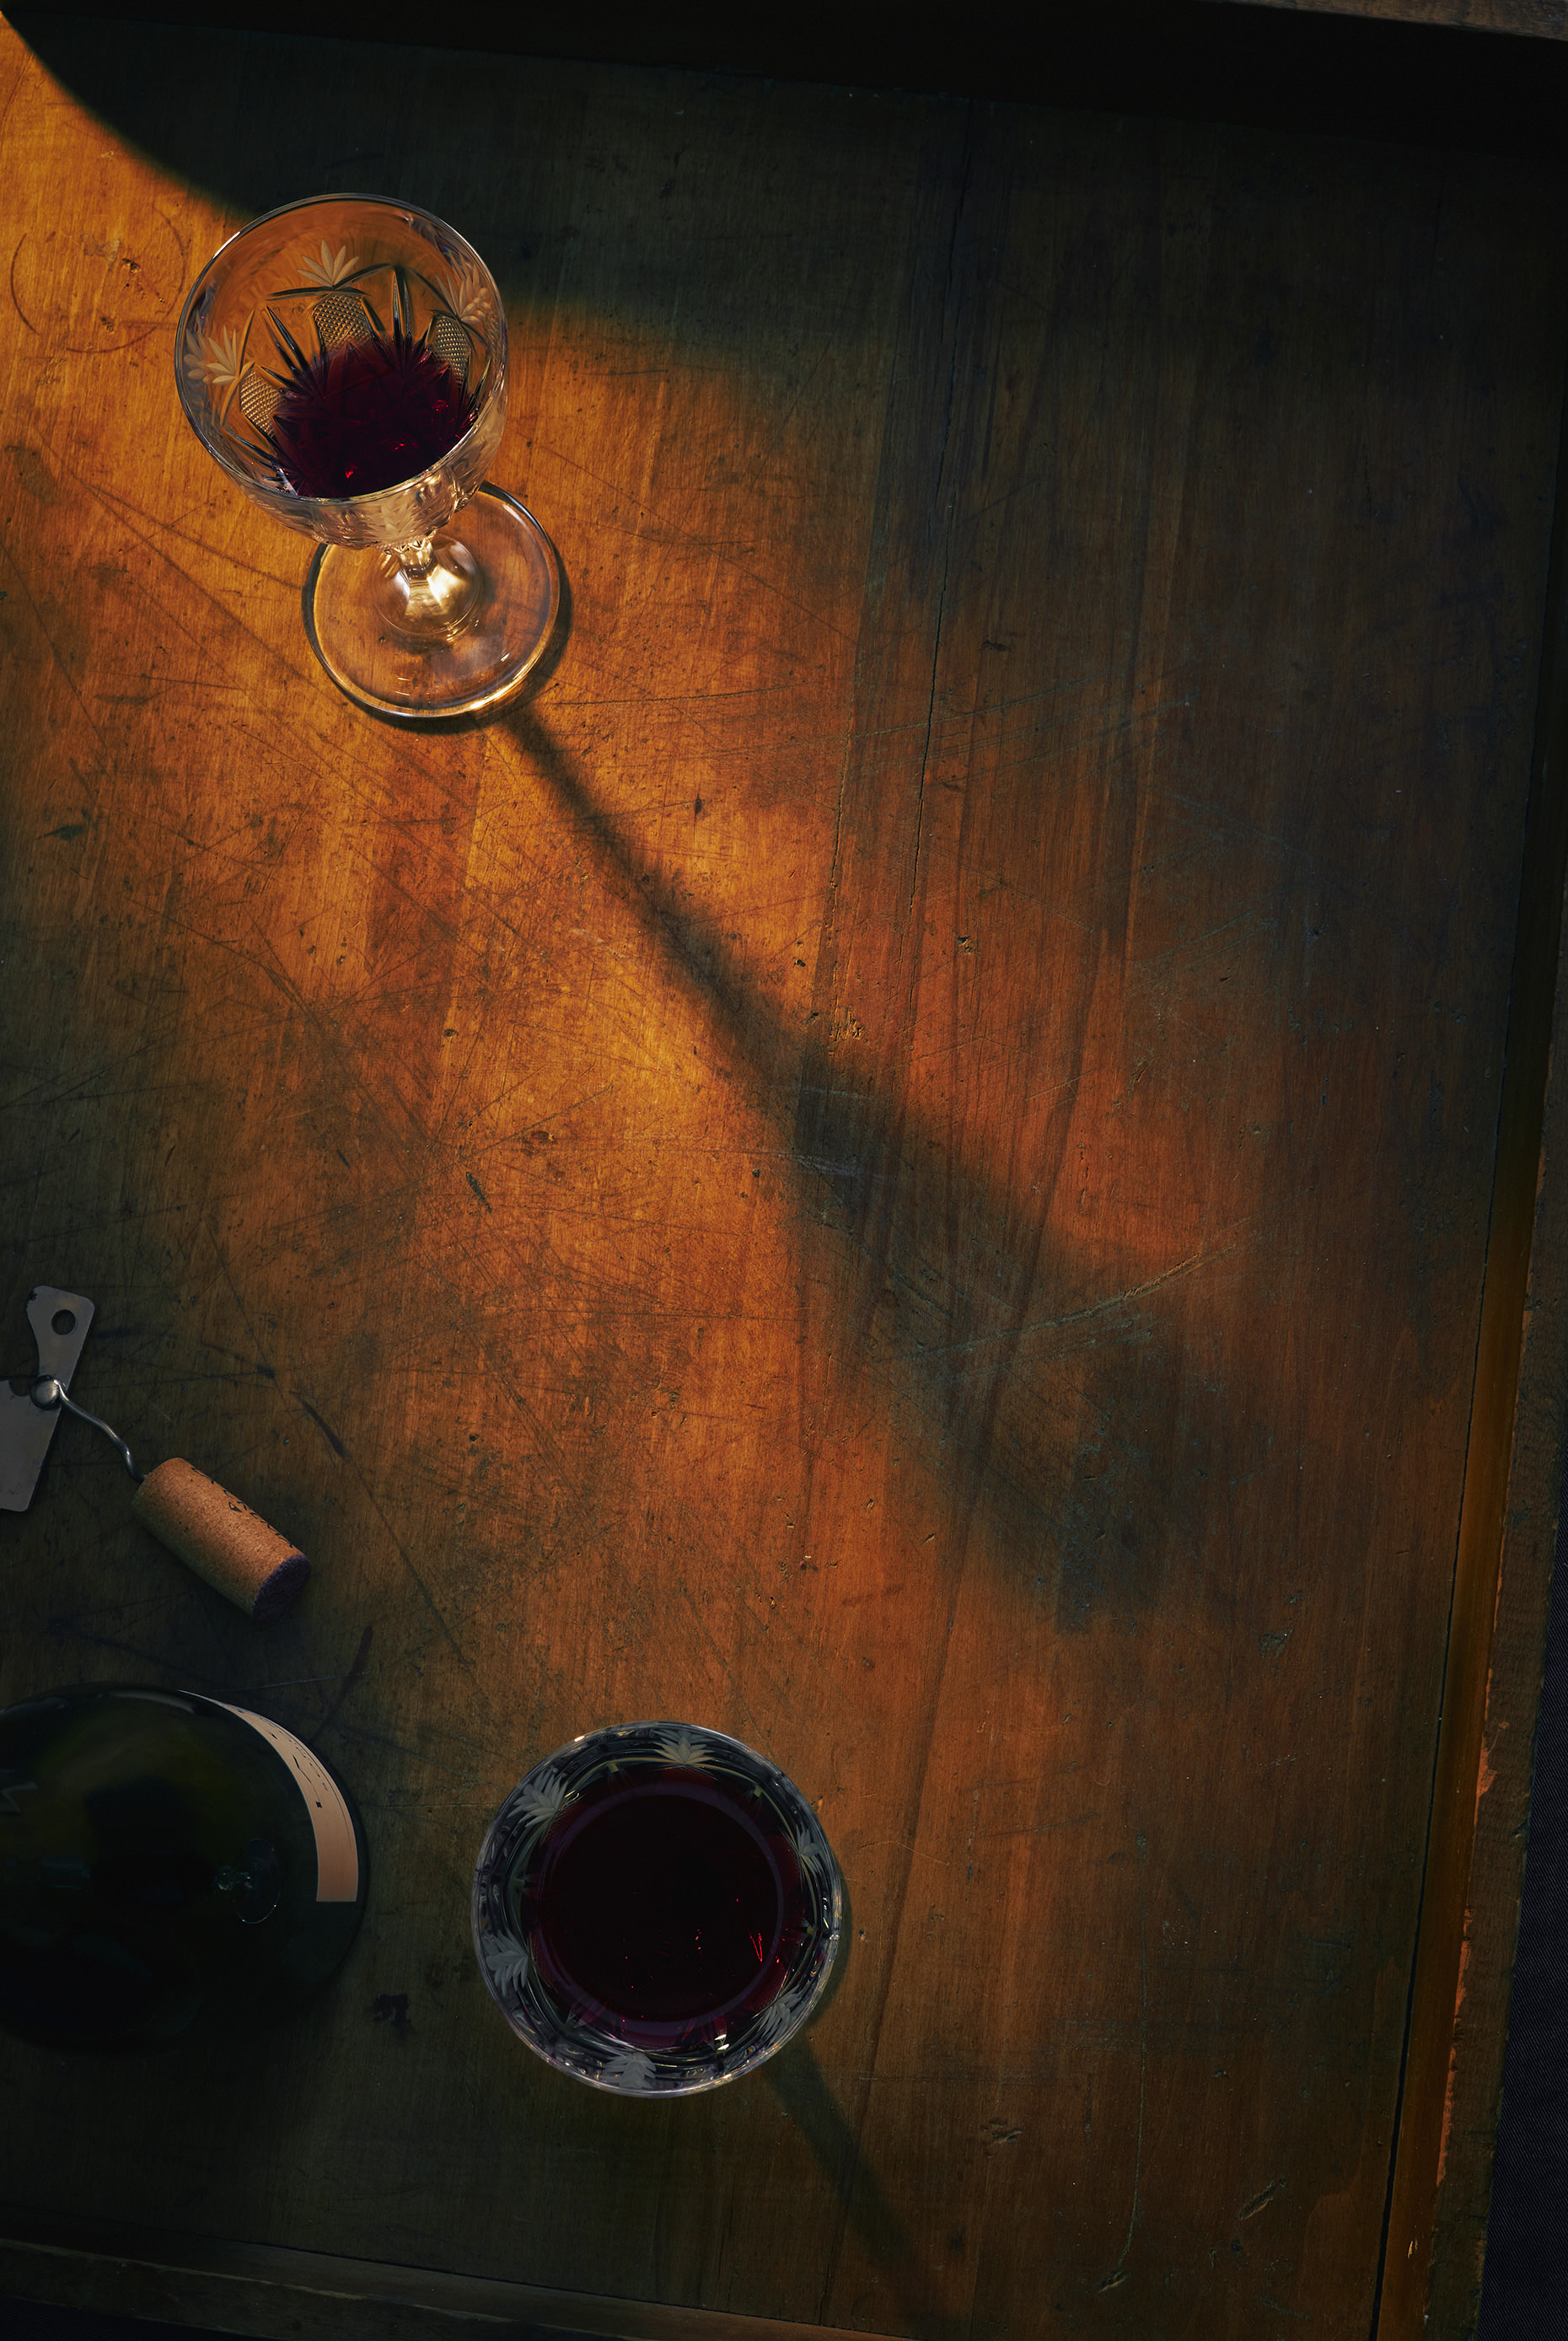 Ottawa food content photographer Matthew Liteplo created this moody portrait of some nice wine. It